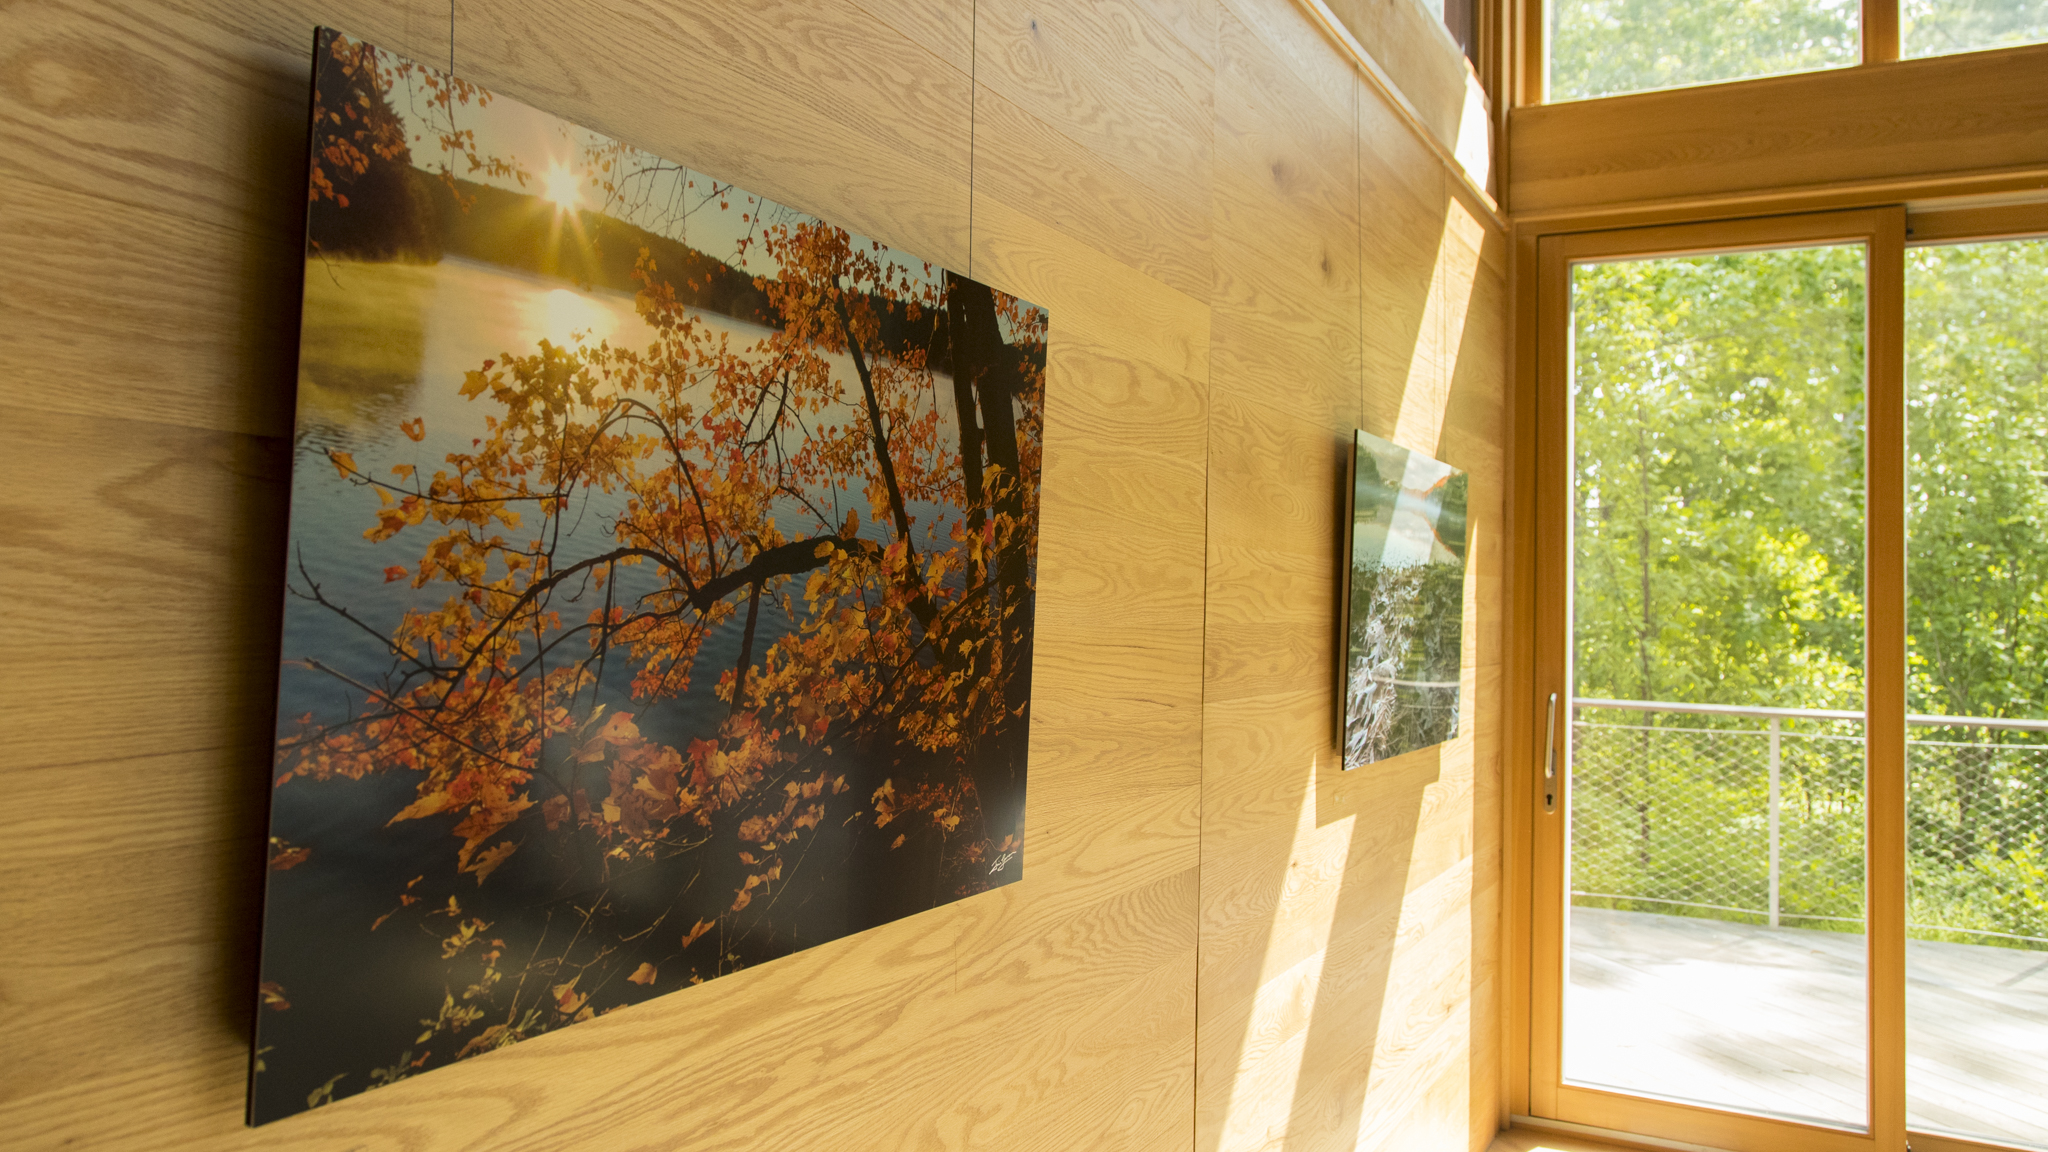 Two 40 inch prints on display at the Walden Pond State Reservation Visitor's Center, Concord, MA.